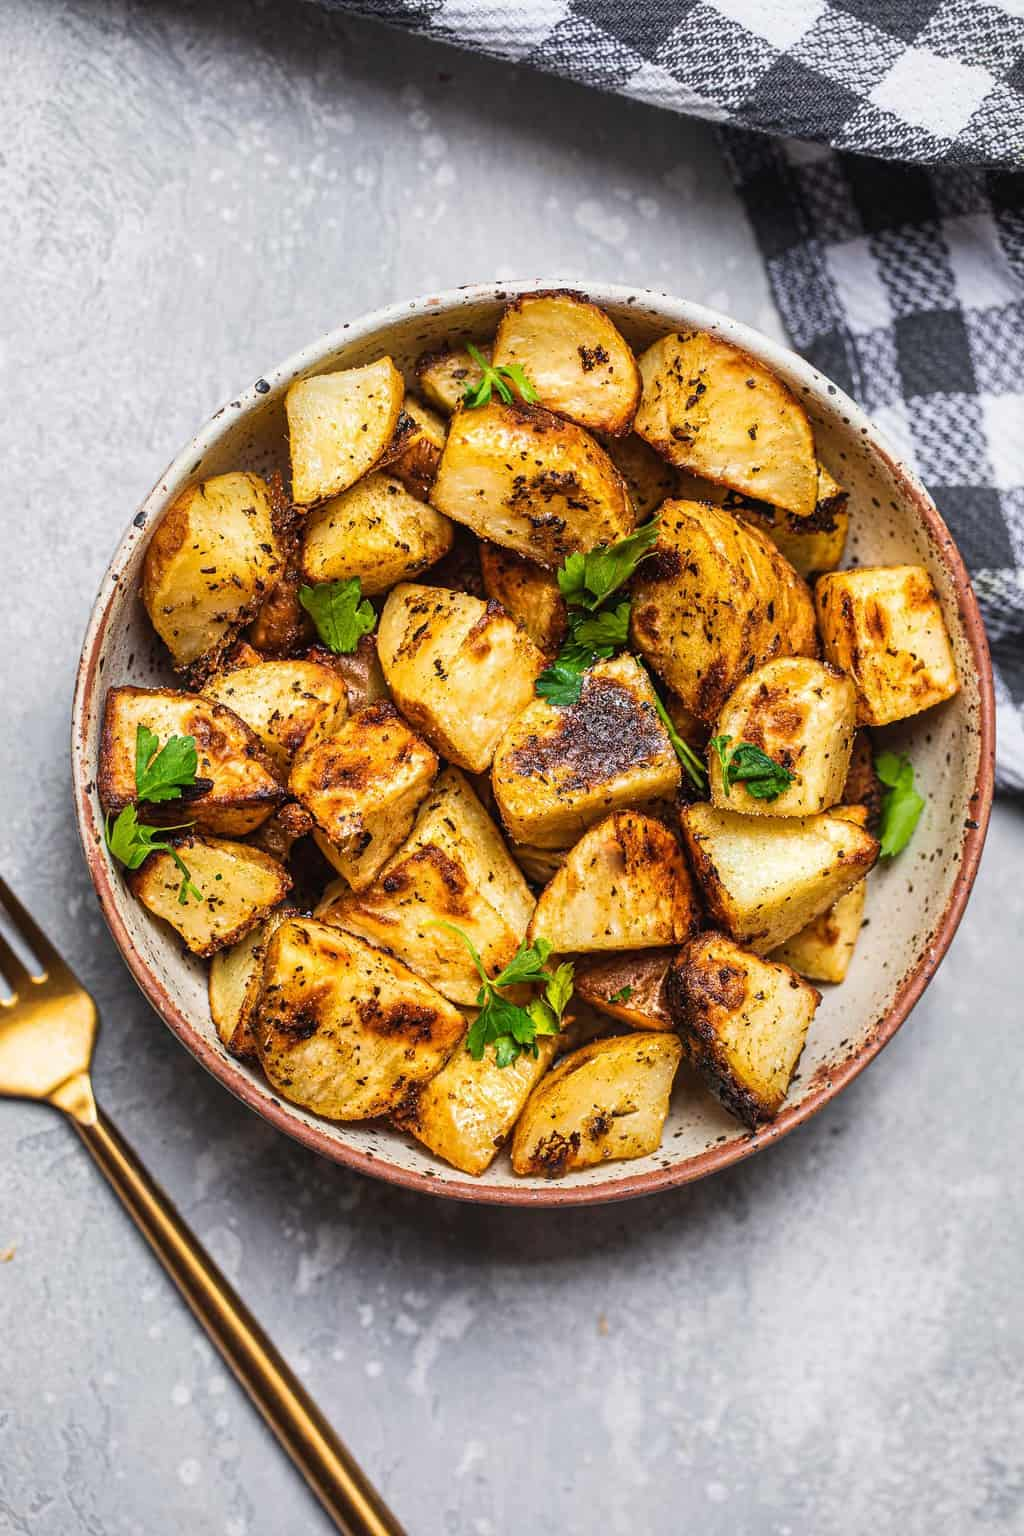 Bowl of potatoes and coriander